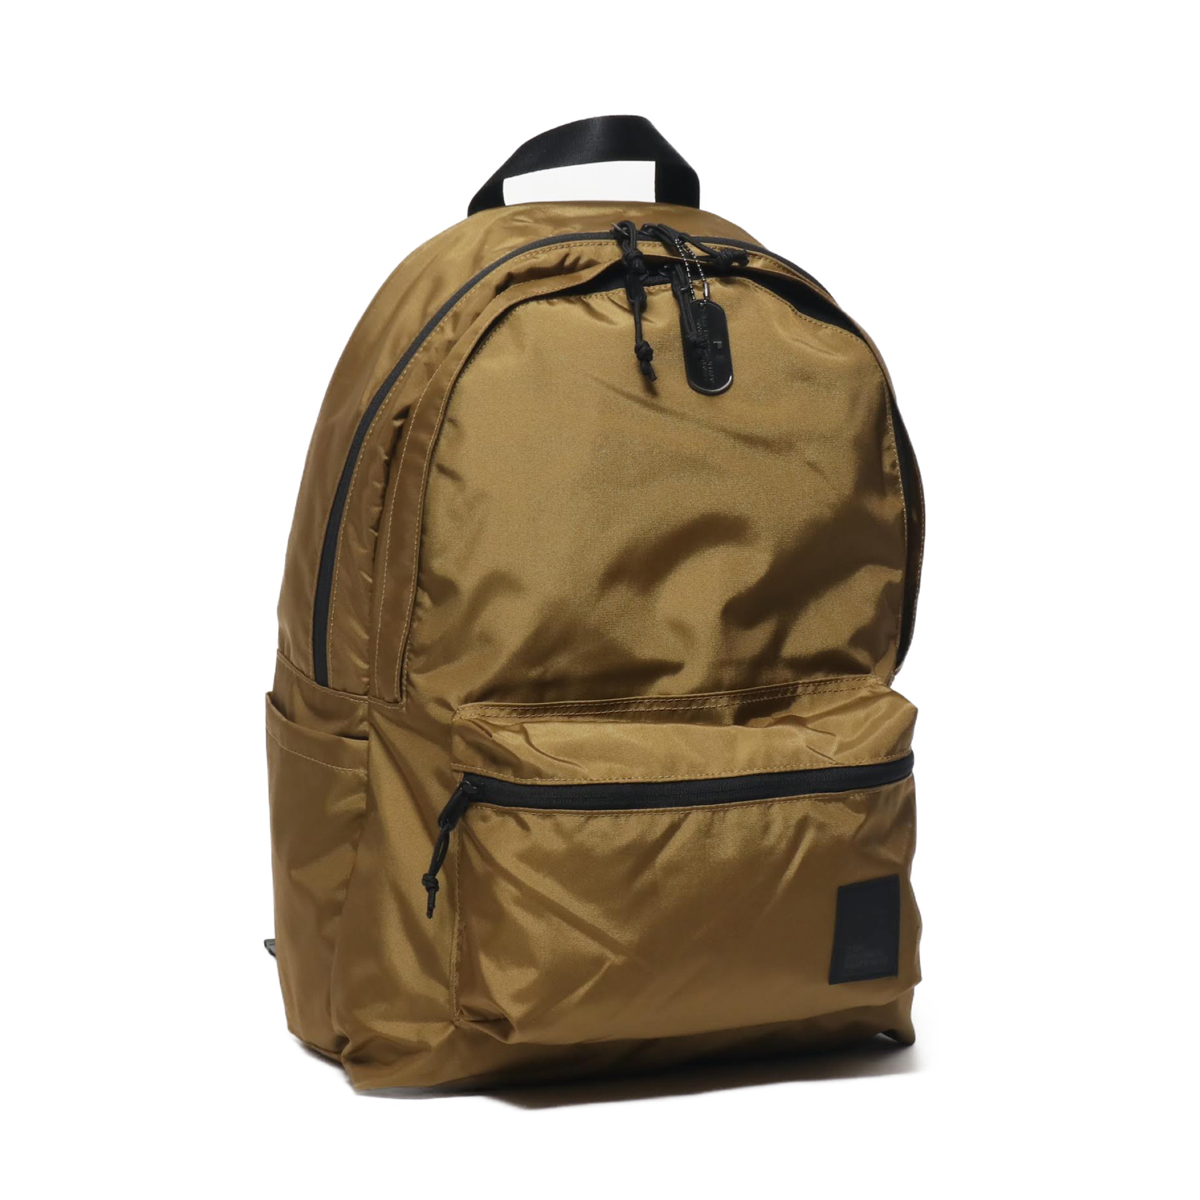 THE BROWN BUFFALO STANDARD ISSUE BACKPACK (ザブラウンバッファロー スタンダード イシュー バックパック)COYOTE【メンズ バックパック】19FA-I:atmos pink